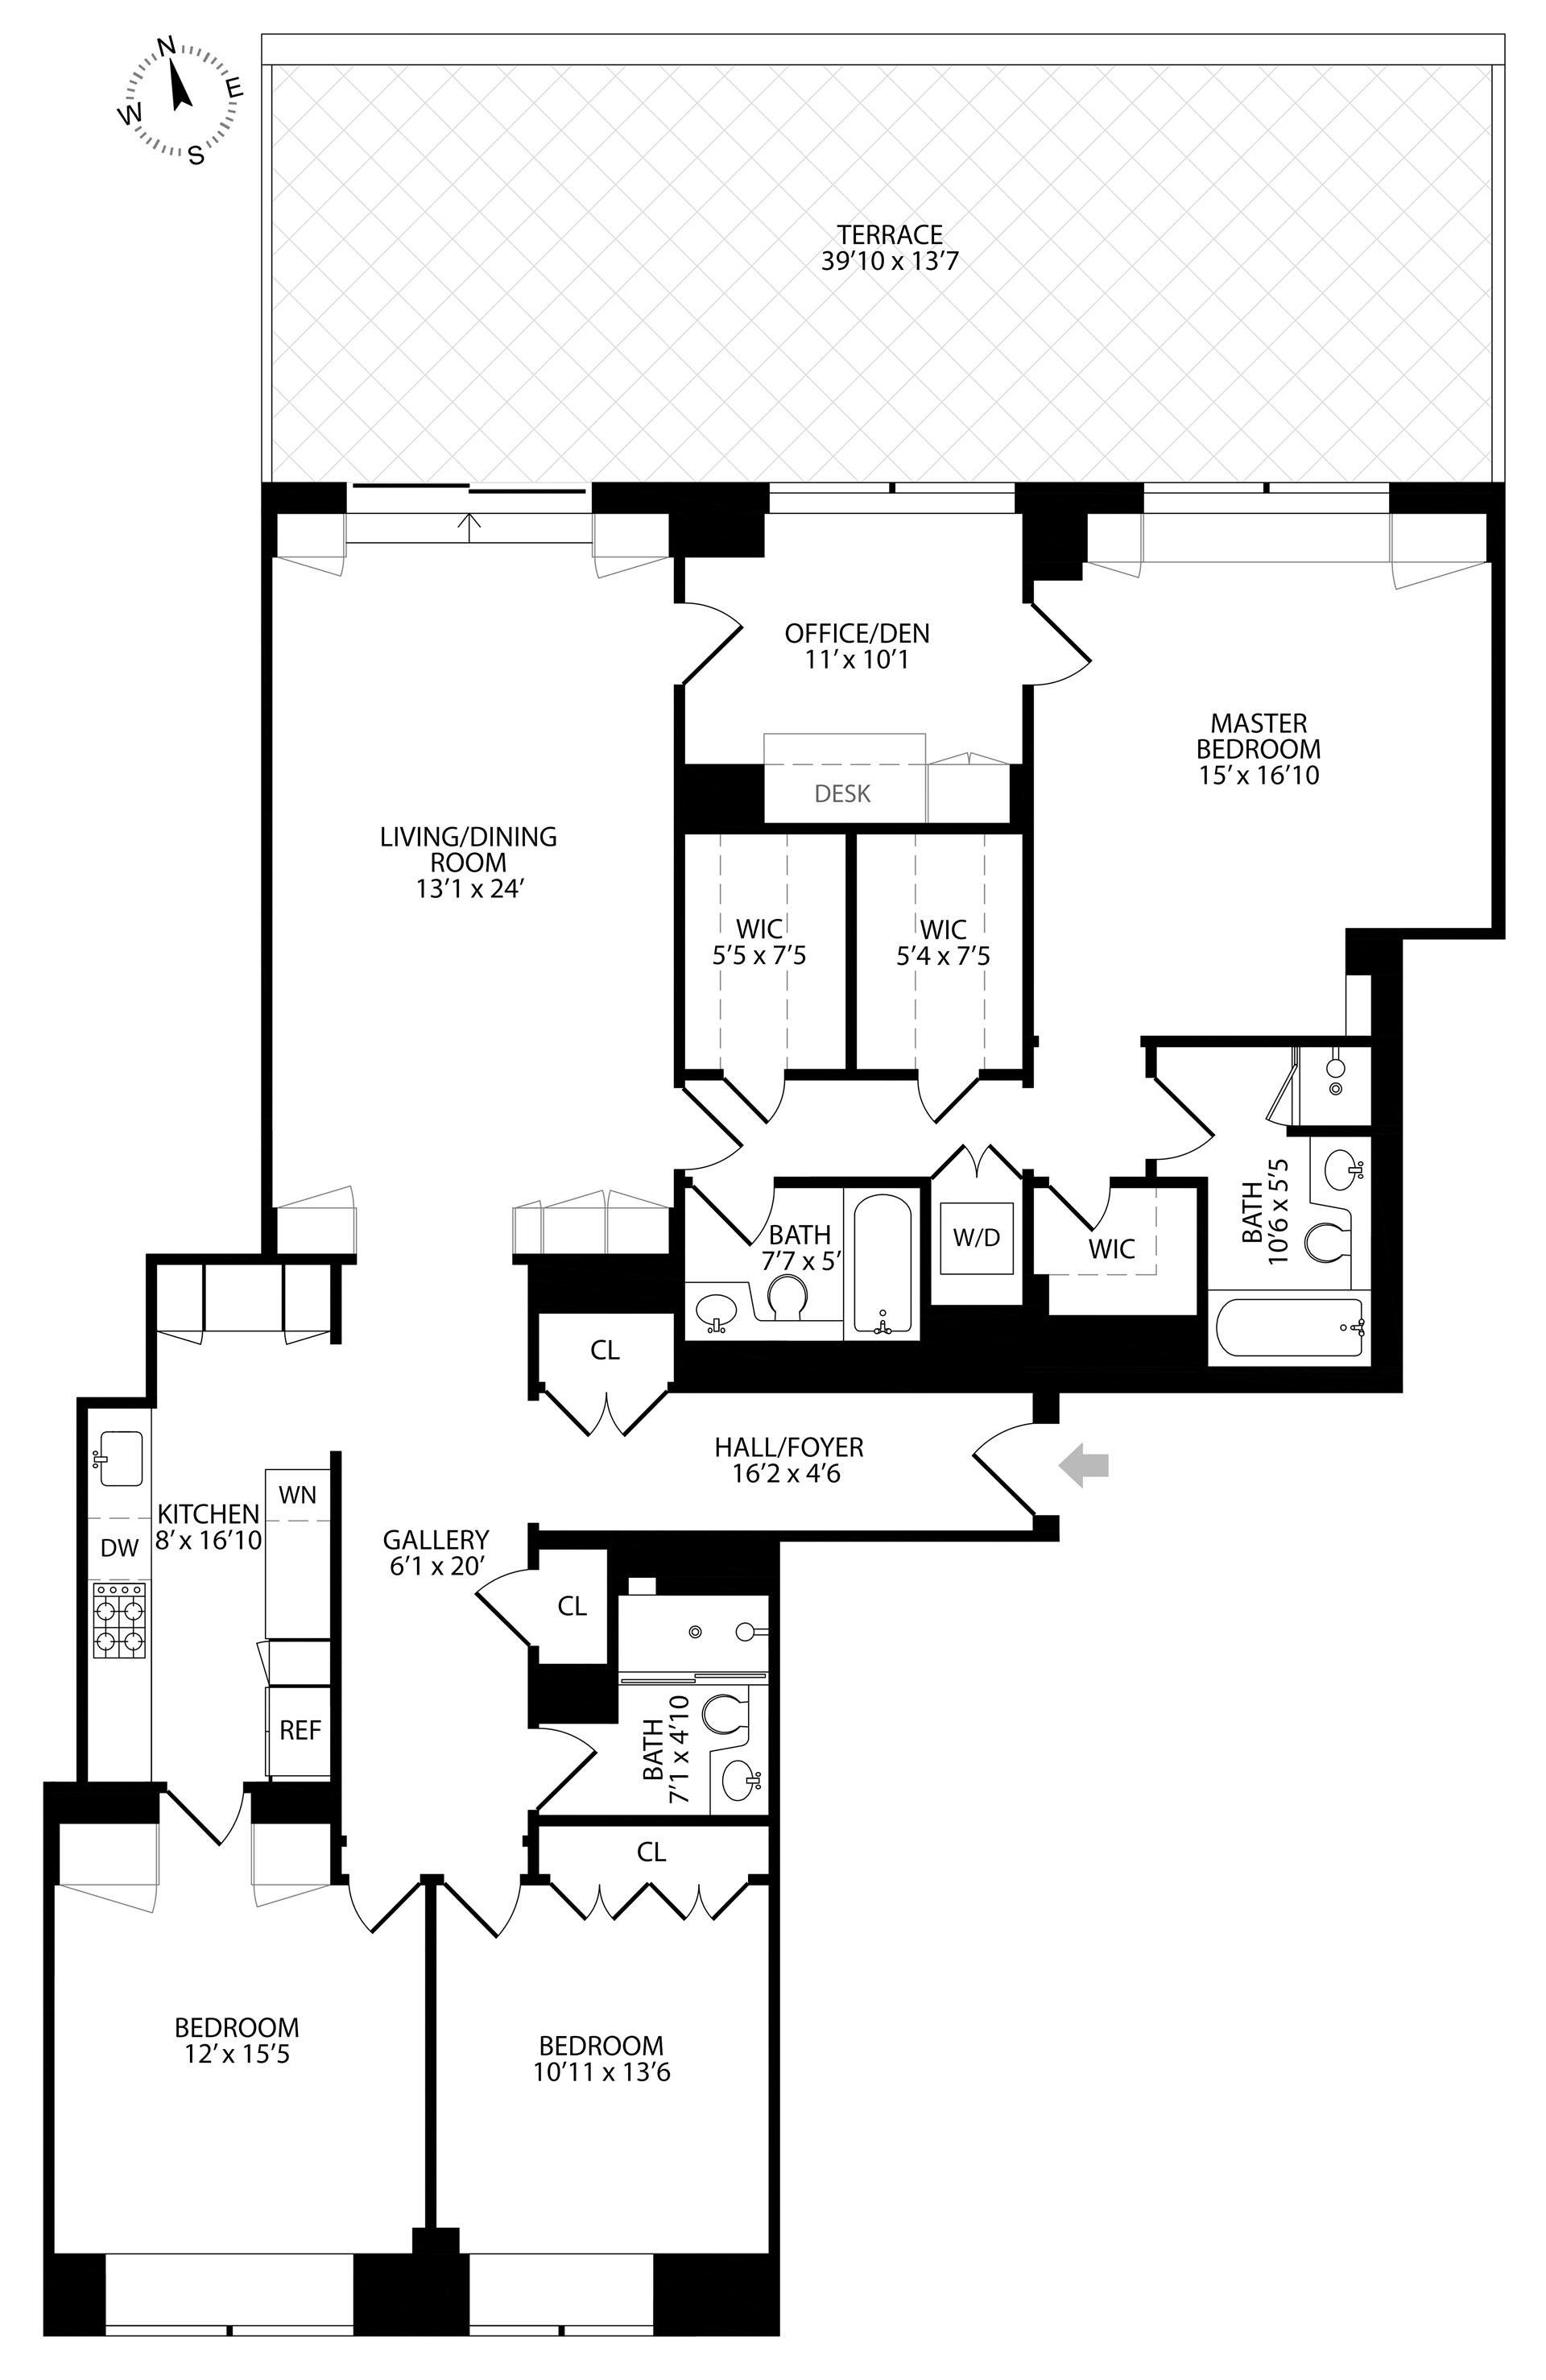 Floor plan of 120 East 87th St, R10L - Carnegie Hill, New York